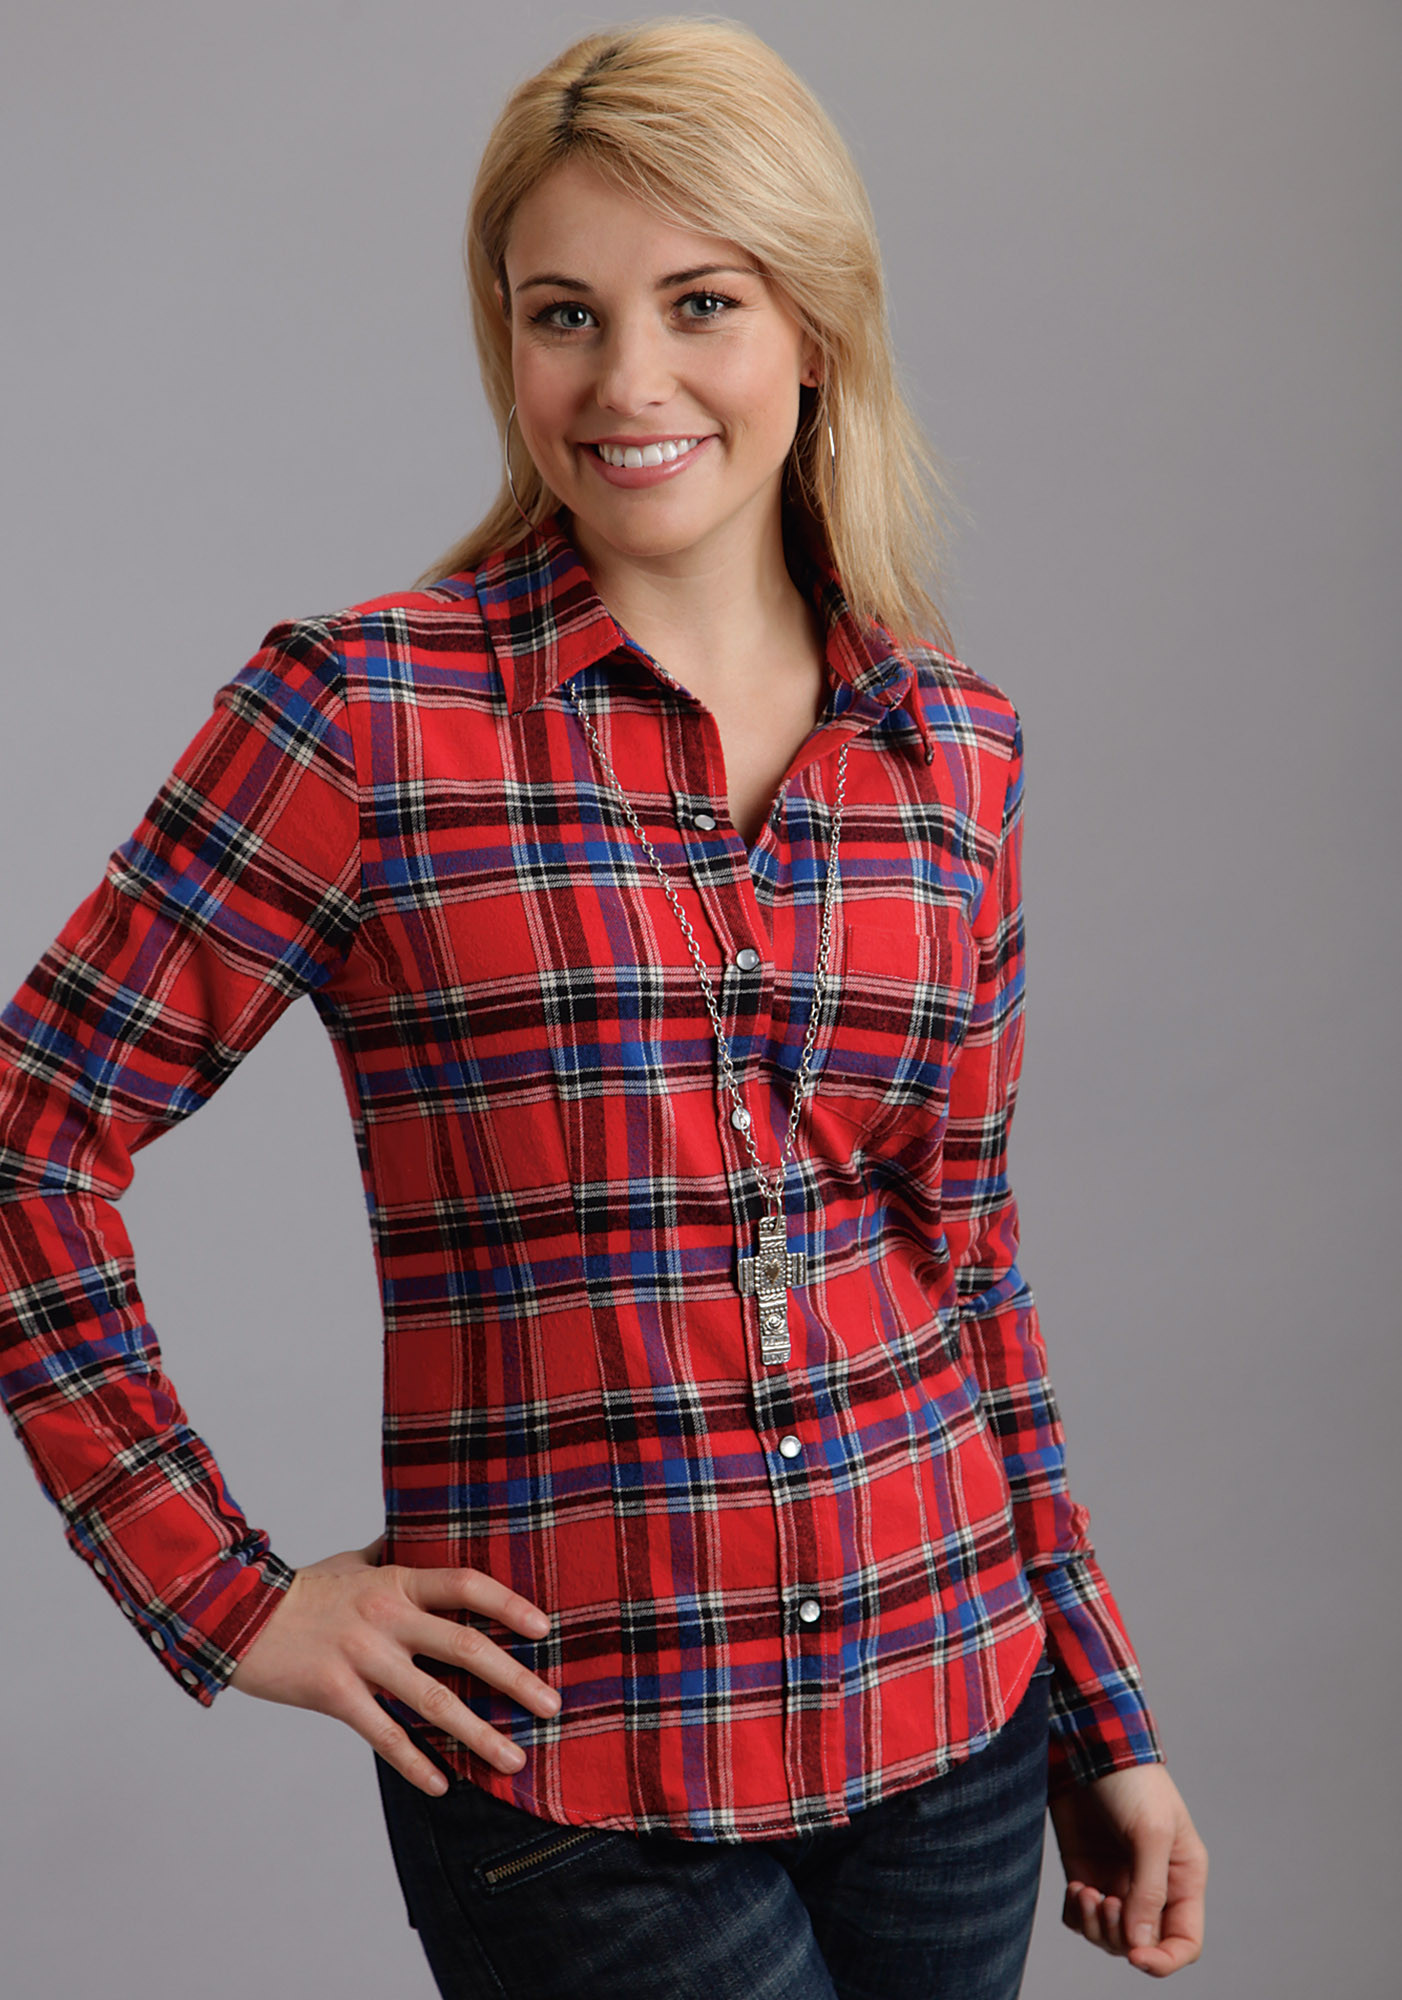 Stetson ladies red and black plaid long sleeve western blouse Womens red tartan plaid shirt